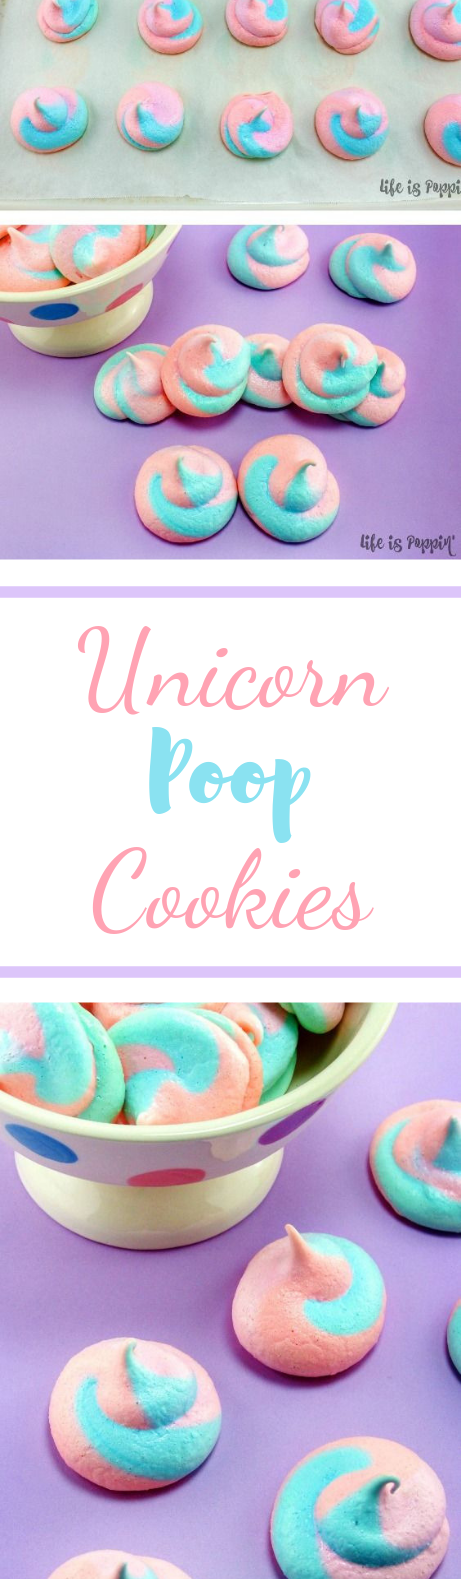 Easy Unicorn Poop Cookies #dessert #party